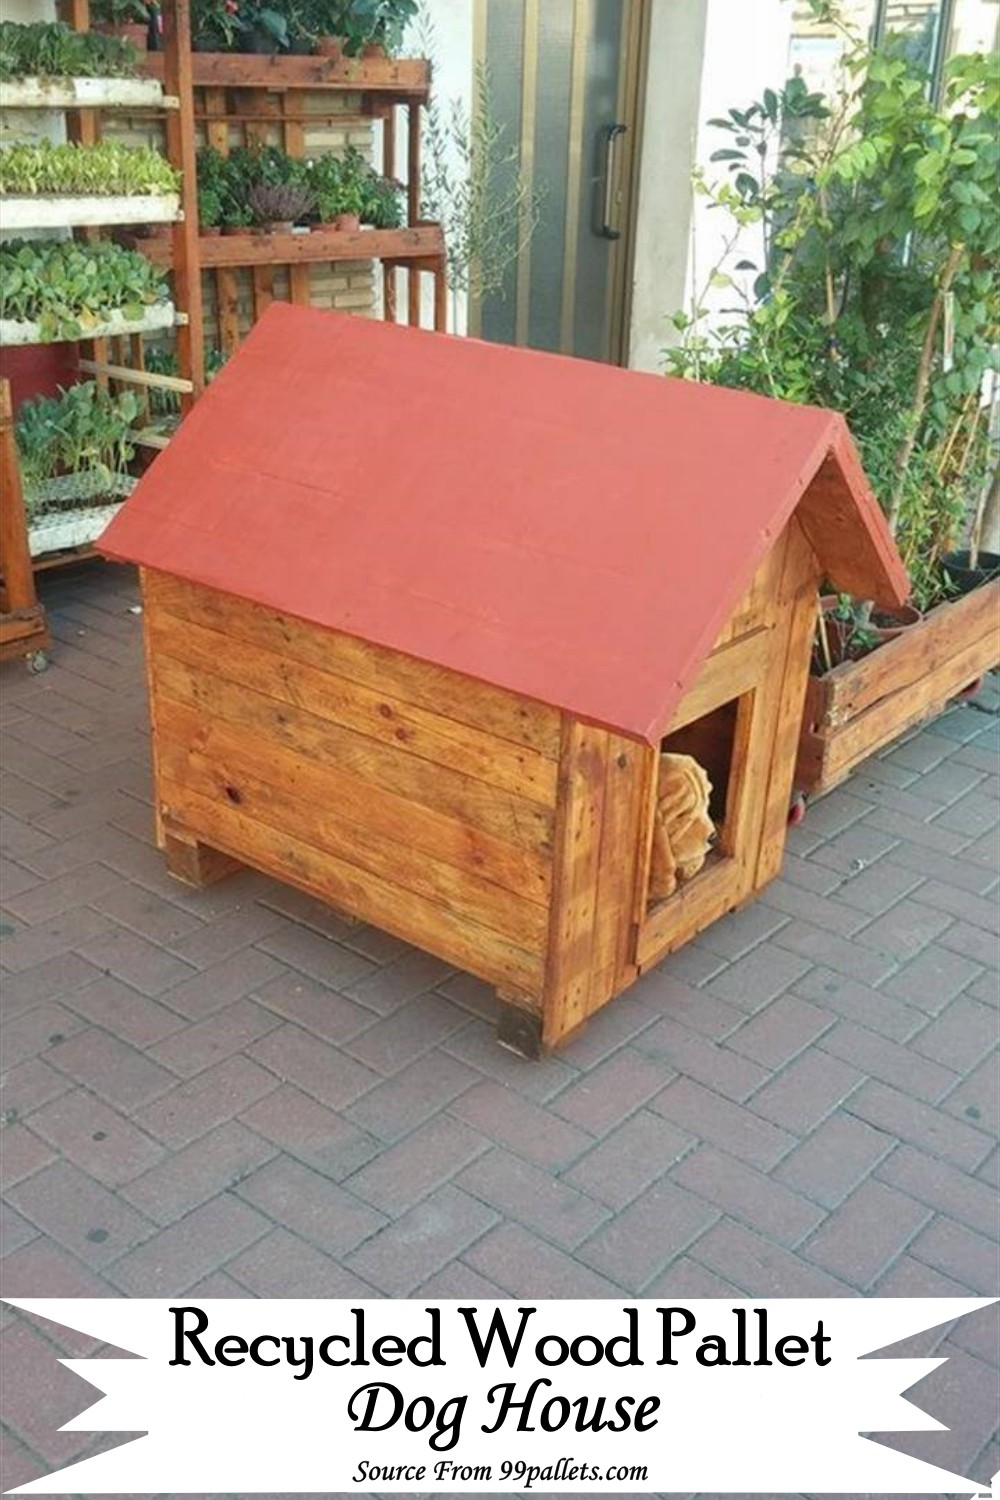 Recycled Wood Pallet House for your canine friend